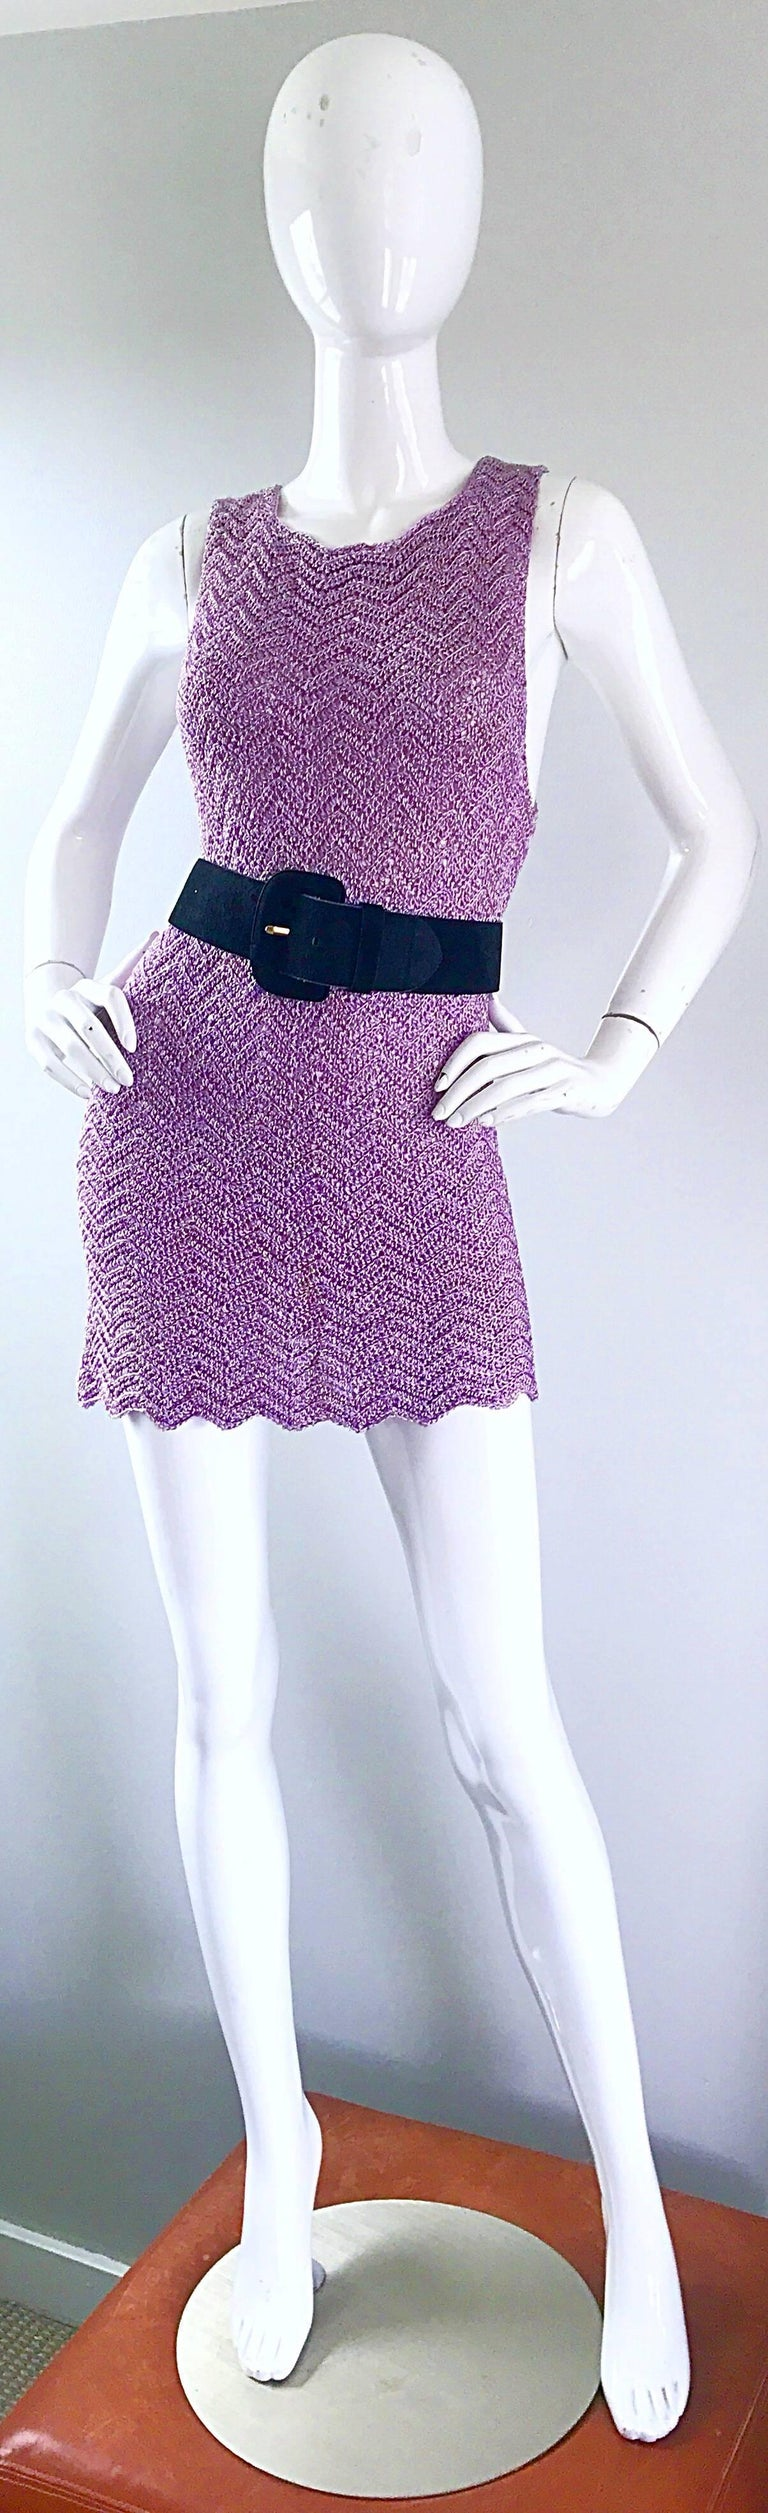 Vintage Isaac Mizrahi Bergdorf Goodman 1990s Purple + Gold Crochet Mini Dress  For Sale 1